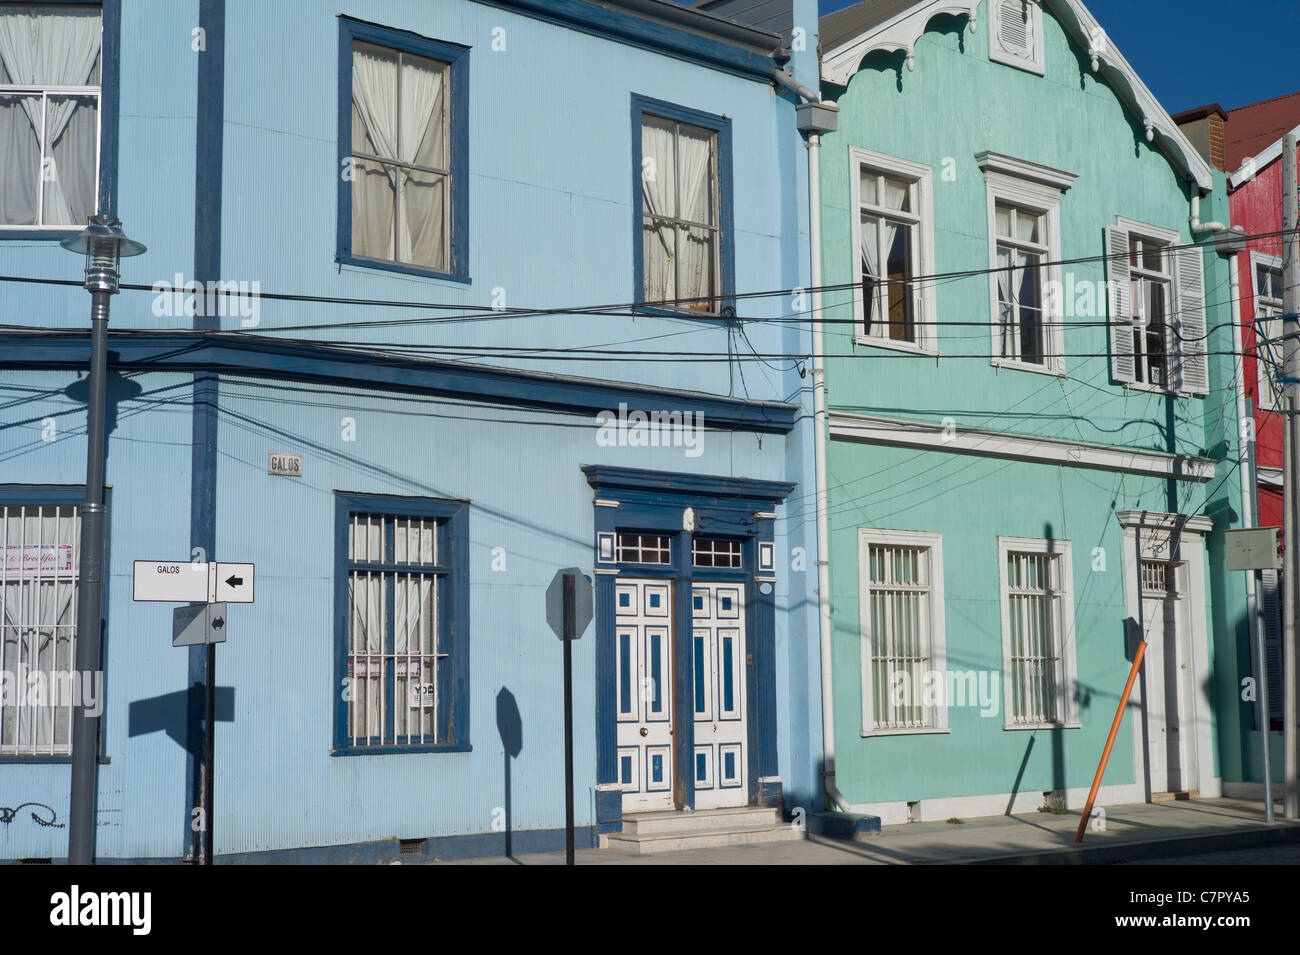 Houses in Valparaiso, Chile, South America - Stock Image